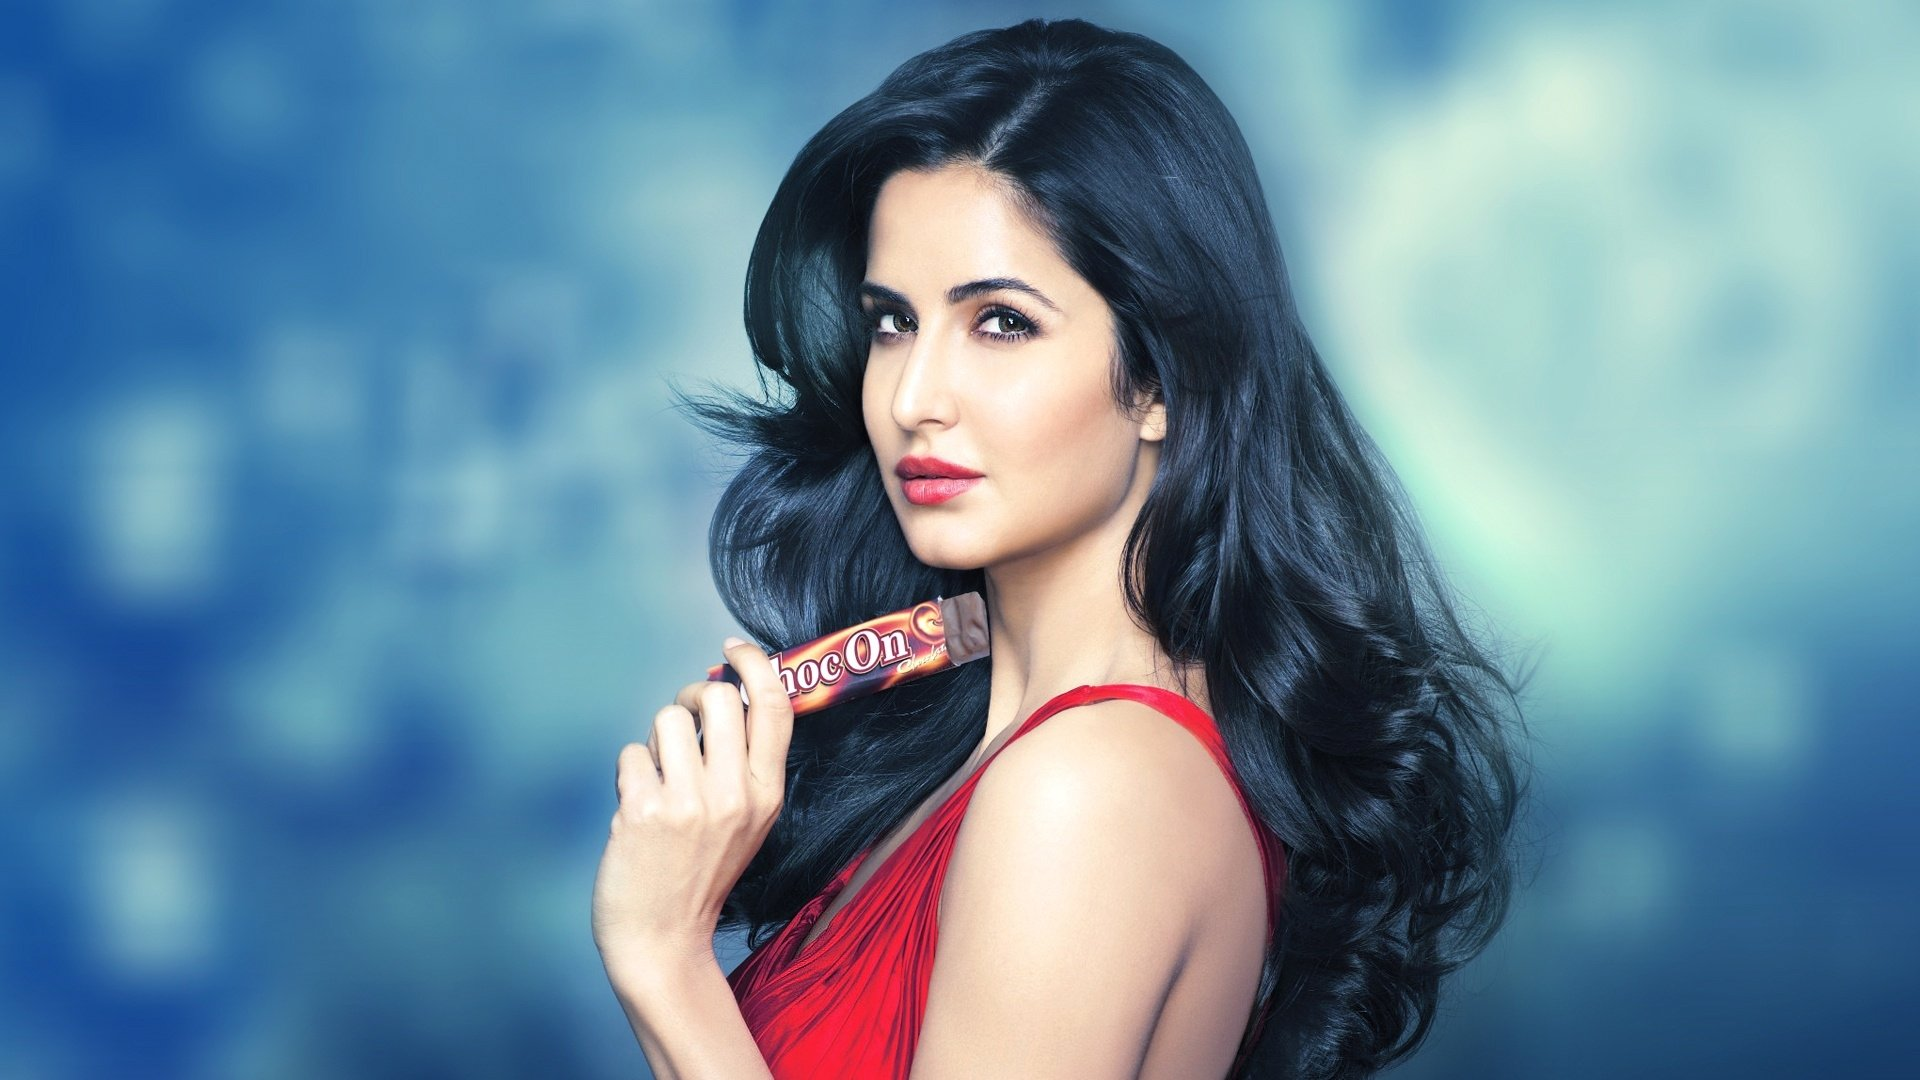 katrina kaif full hd wallpaper and background image | 1920x1080 | id